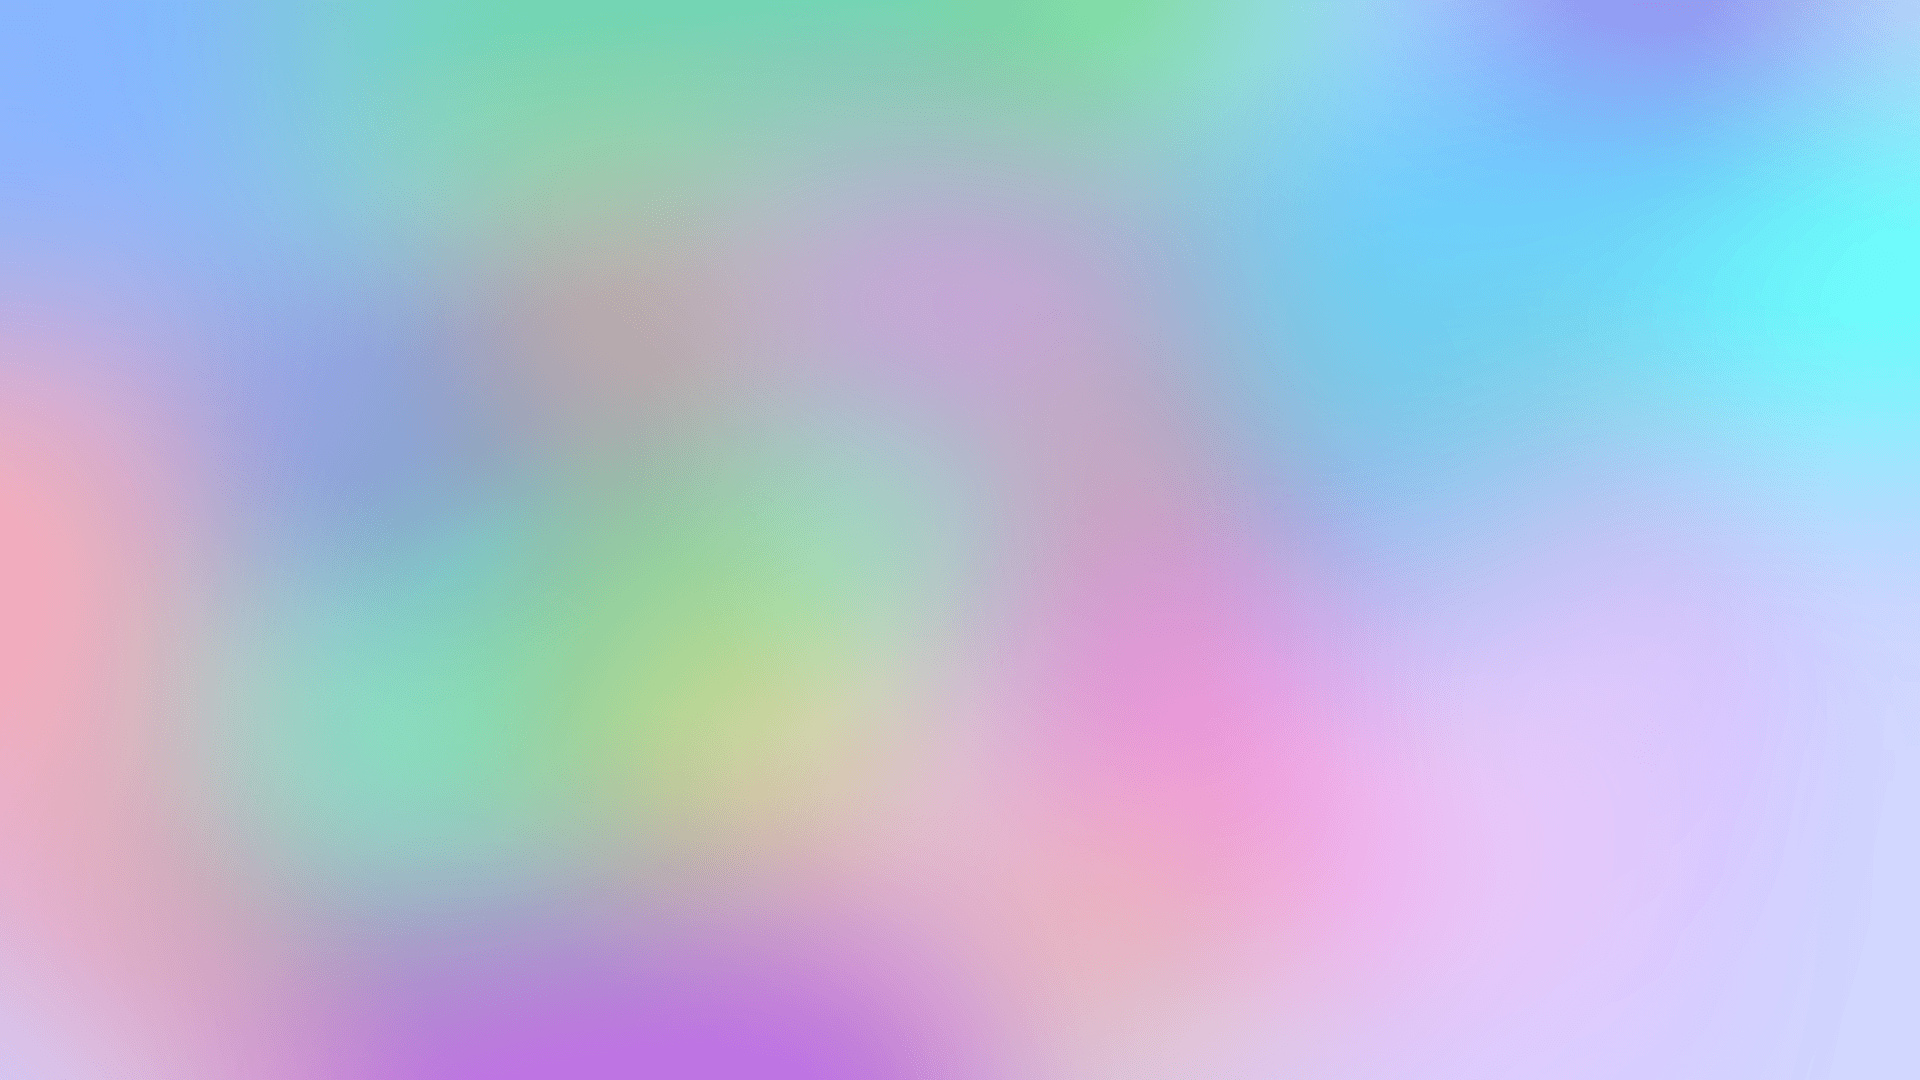 pastel wallpaper stardust colorful - photo #26